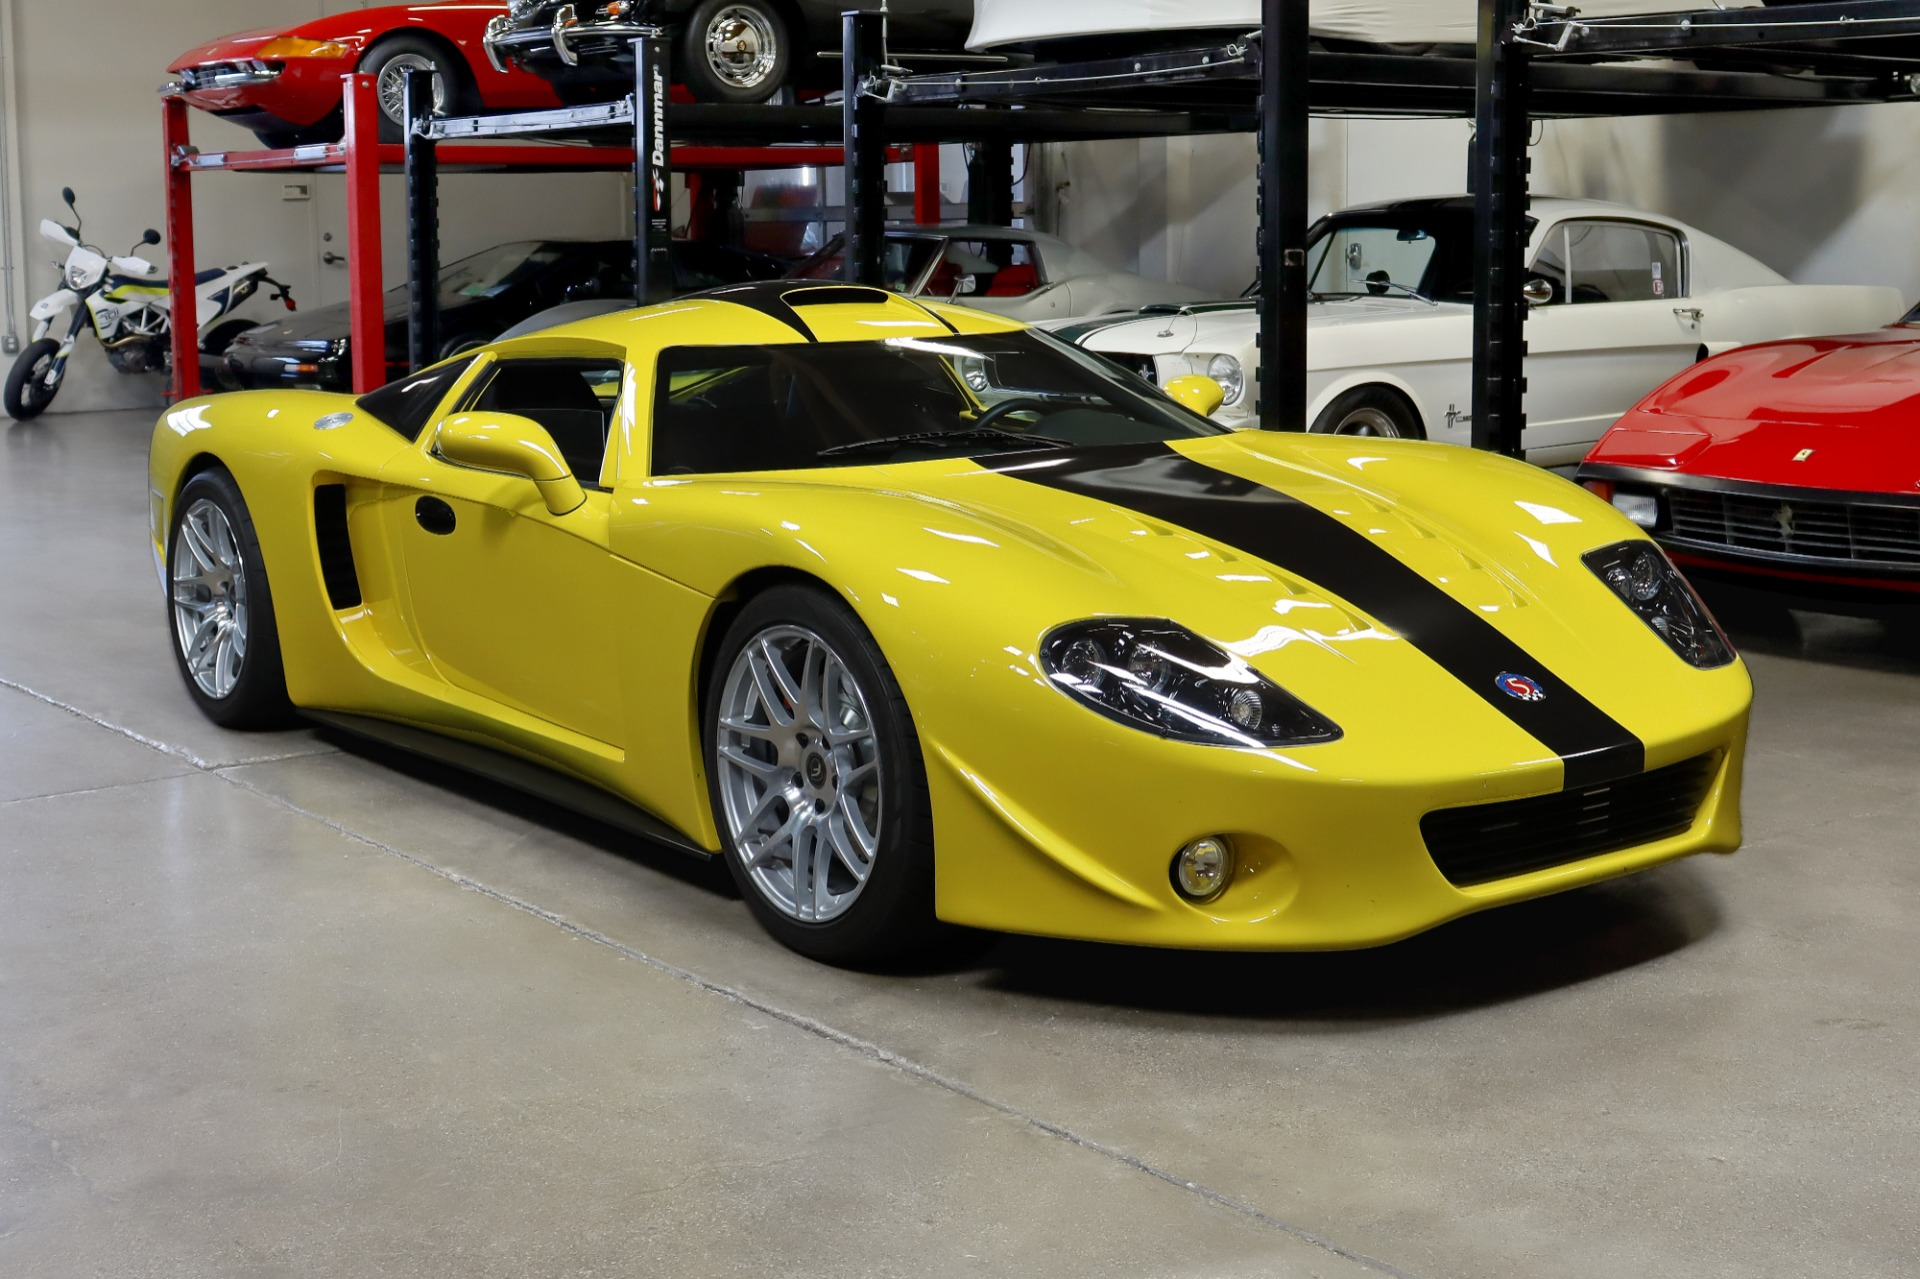 Used 1960 FACTORY FIVE GTM for sale Sold at San Francisco Sports Cars in San Carlos CA 94070 1